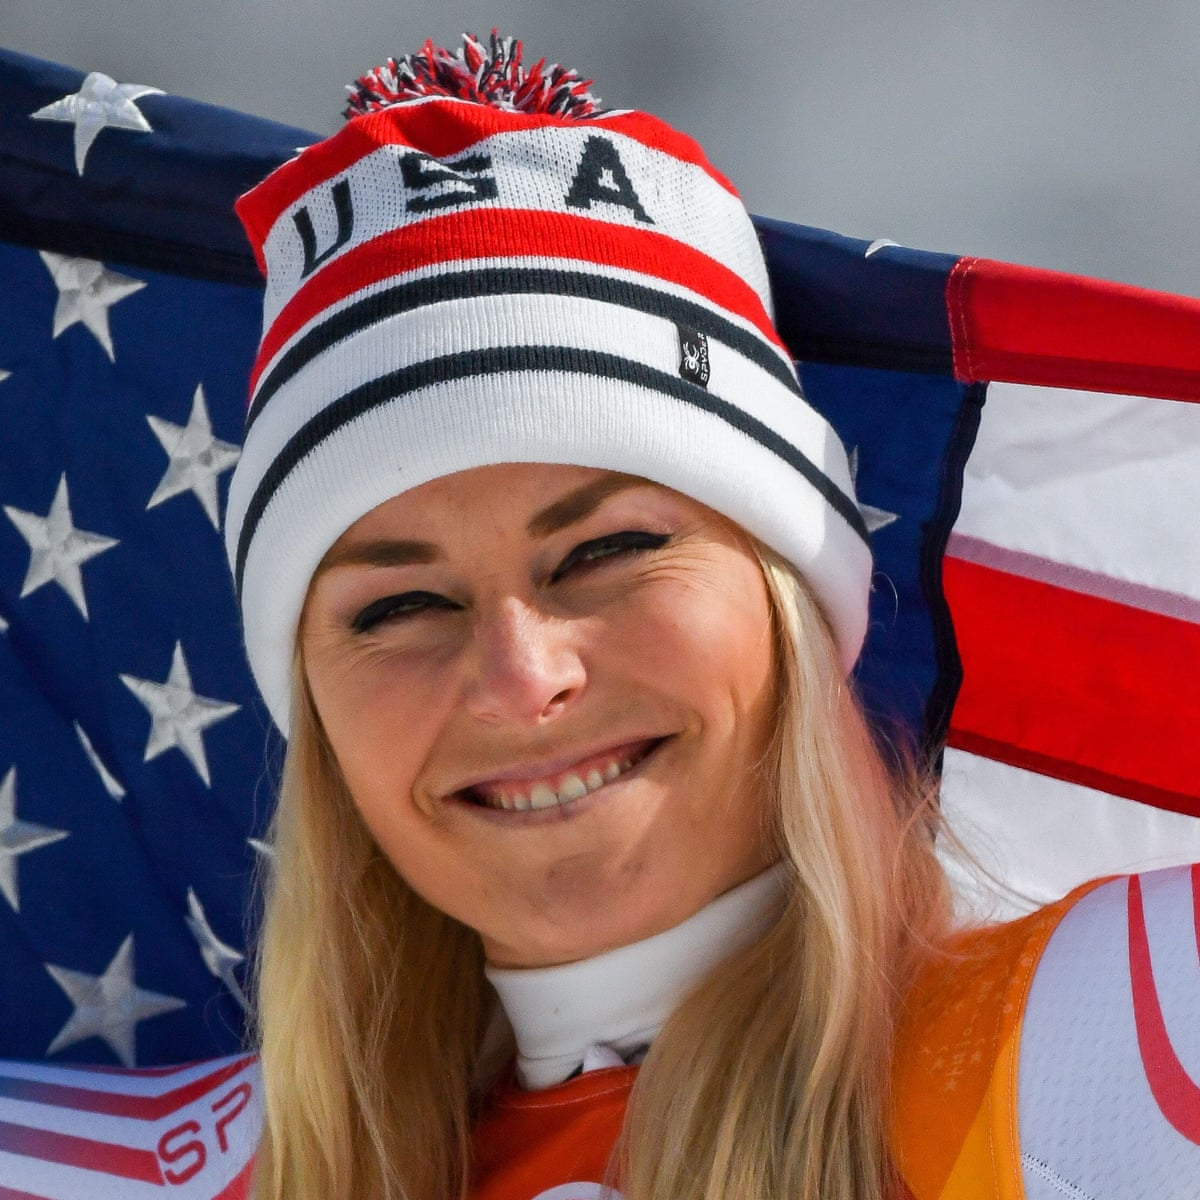 Broken Beyond Repair Lindsey Vonn Set To Retire After World Championships Skiing The Guardian